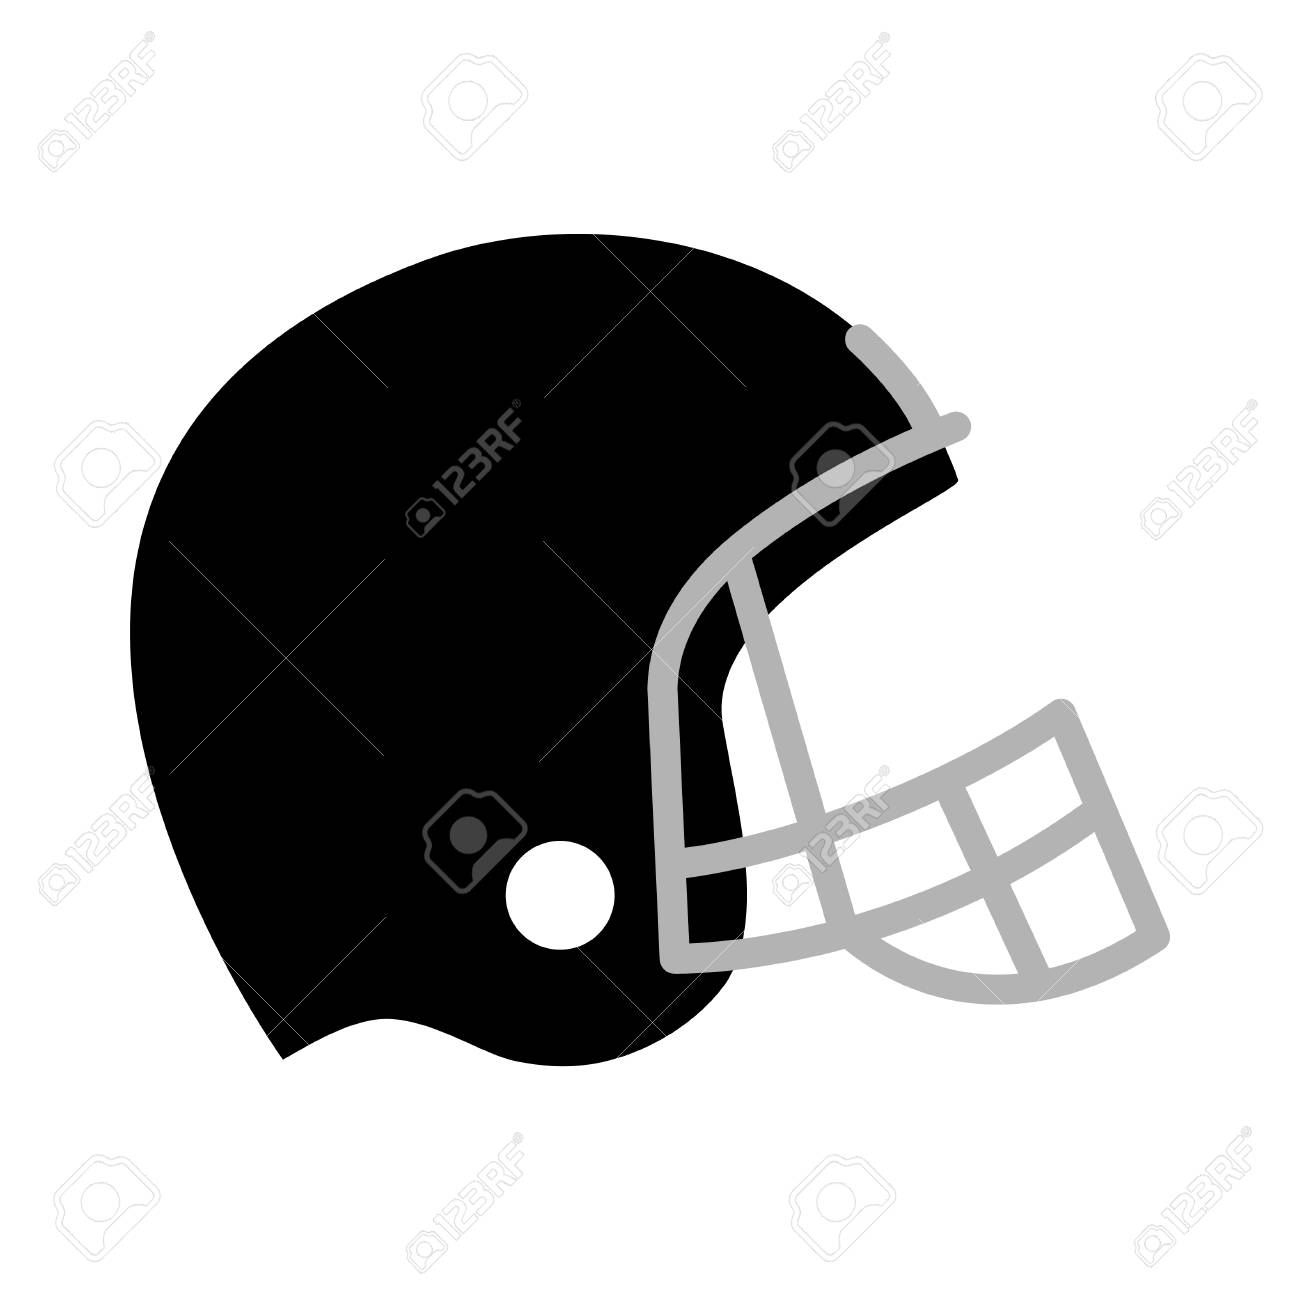 football helmet vector icon royalty free cliparts vectors and rh 123rf com